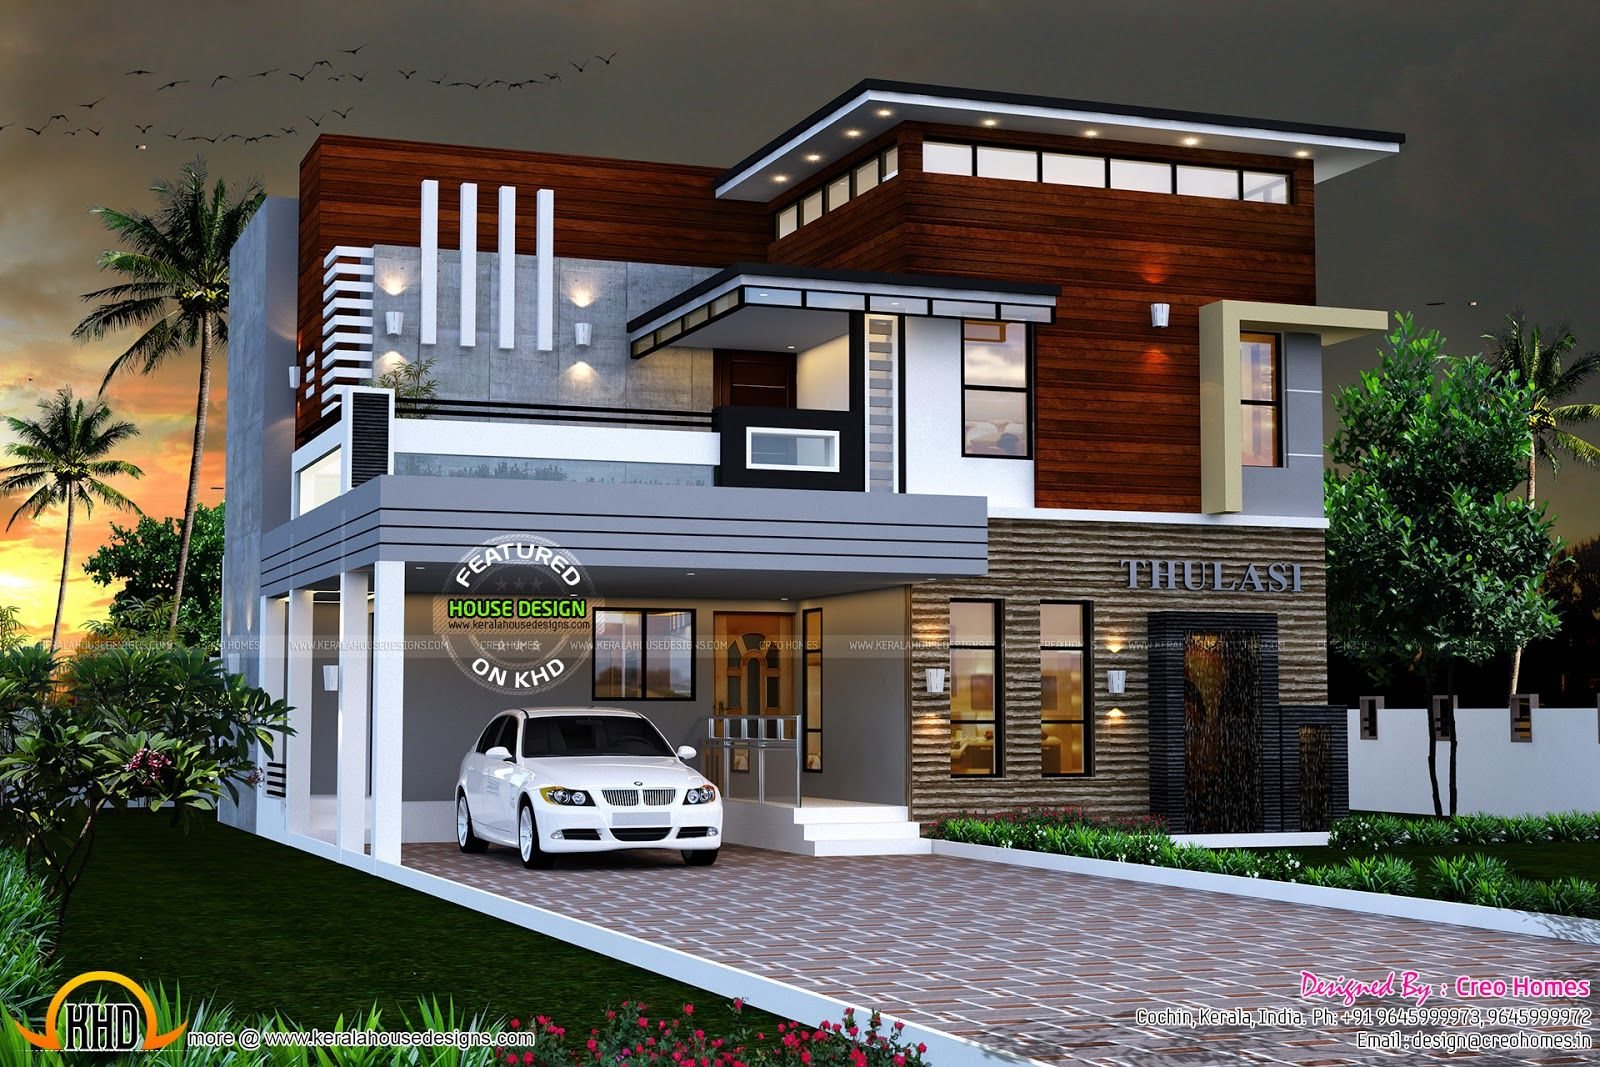 Eterior design modern small house architecture building plan home design kerala house plans home - New homes designs photos ...